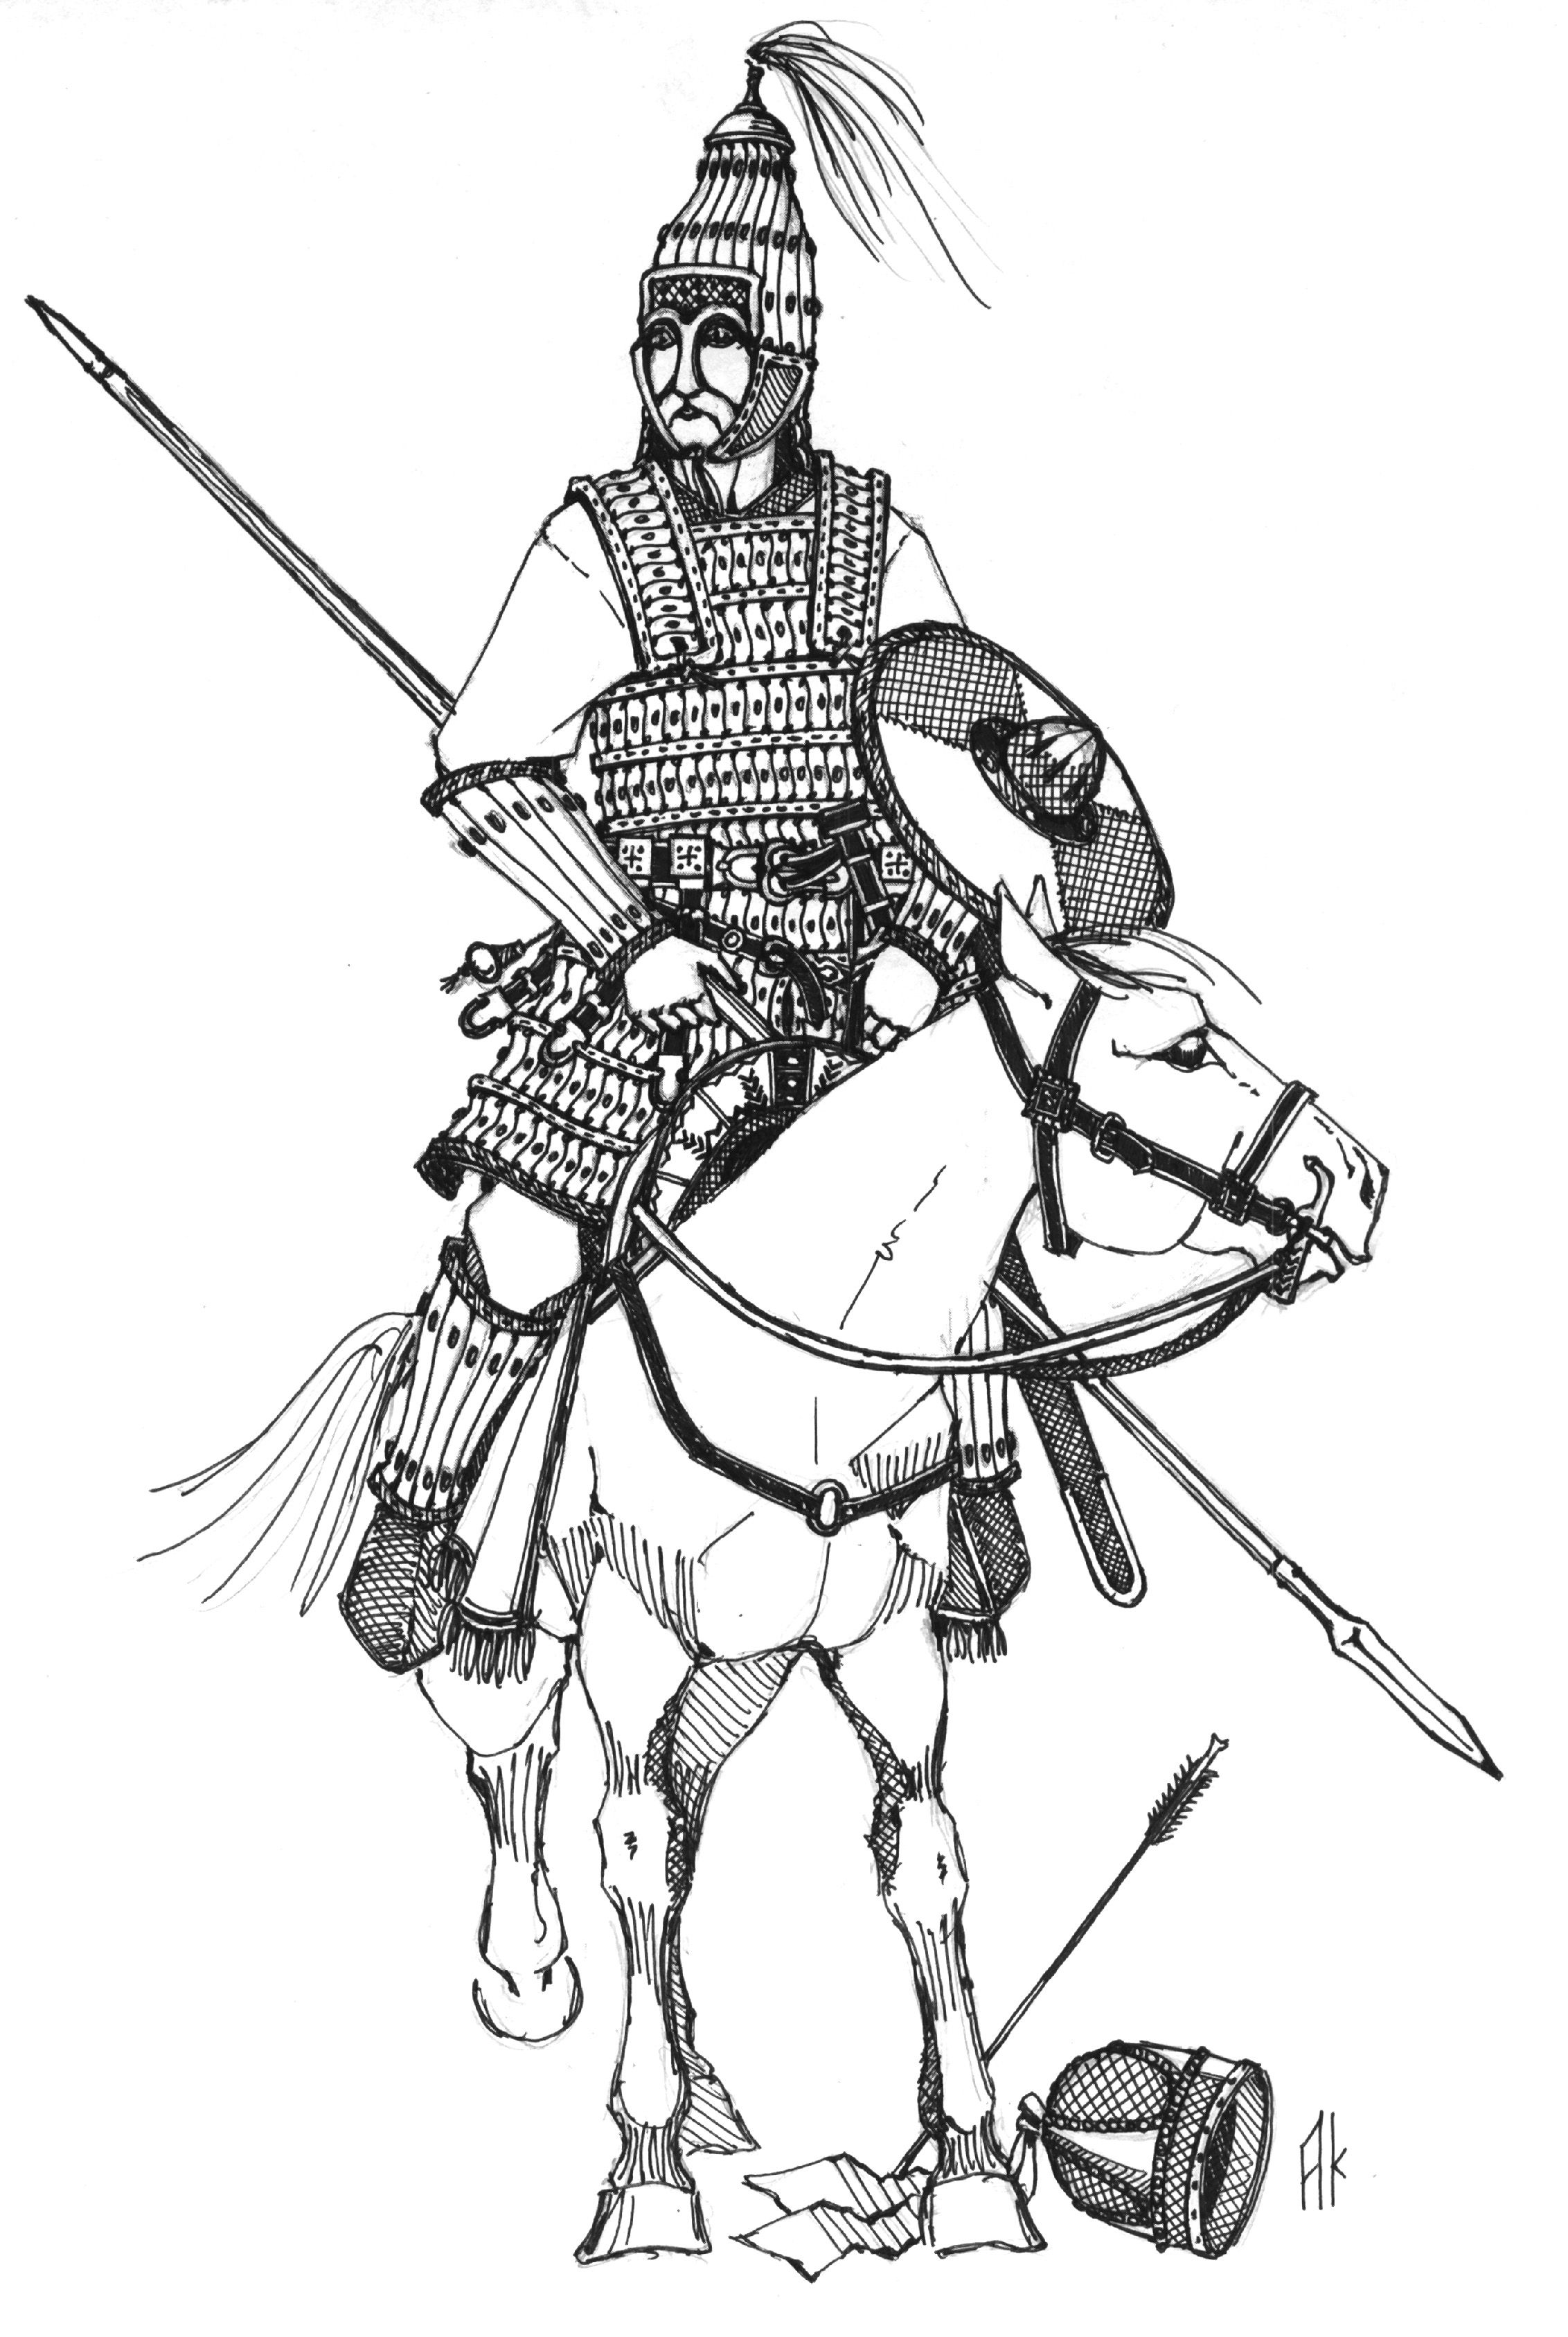 the turks and mongols Are some kazakh tribes of mongol origin general announcements and questions general board general history general world history middle east ottoman empire iranian turks turkey  you said that kul tigin looked turkic and added that the difference between turks and mongols is that the turks are taller and have more mixed genes.